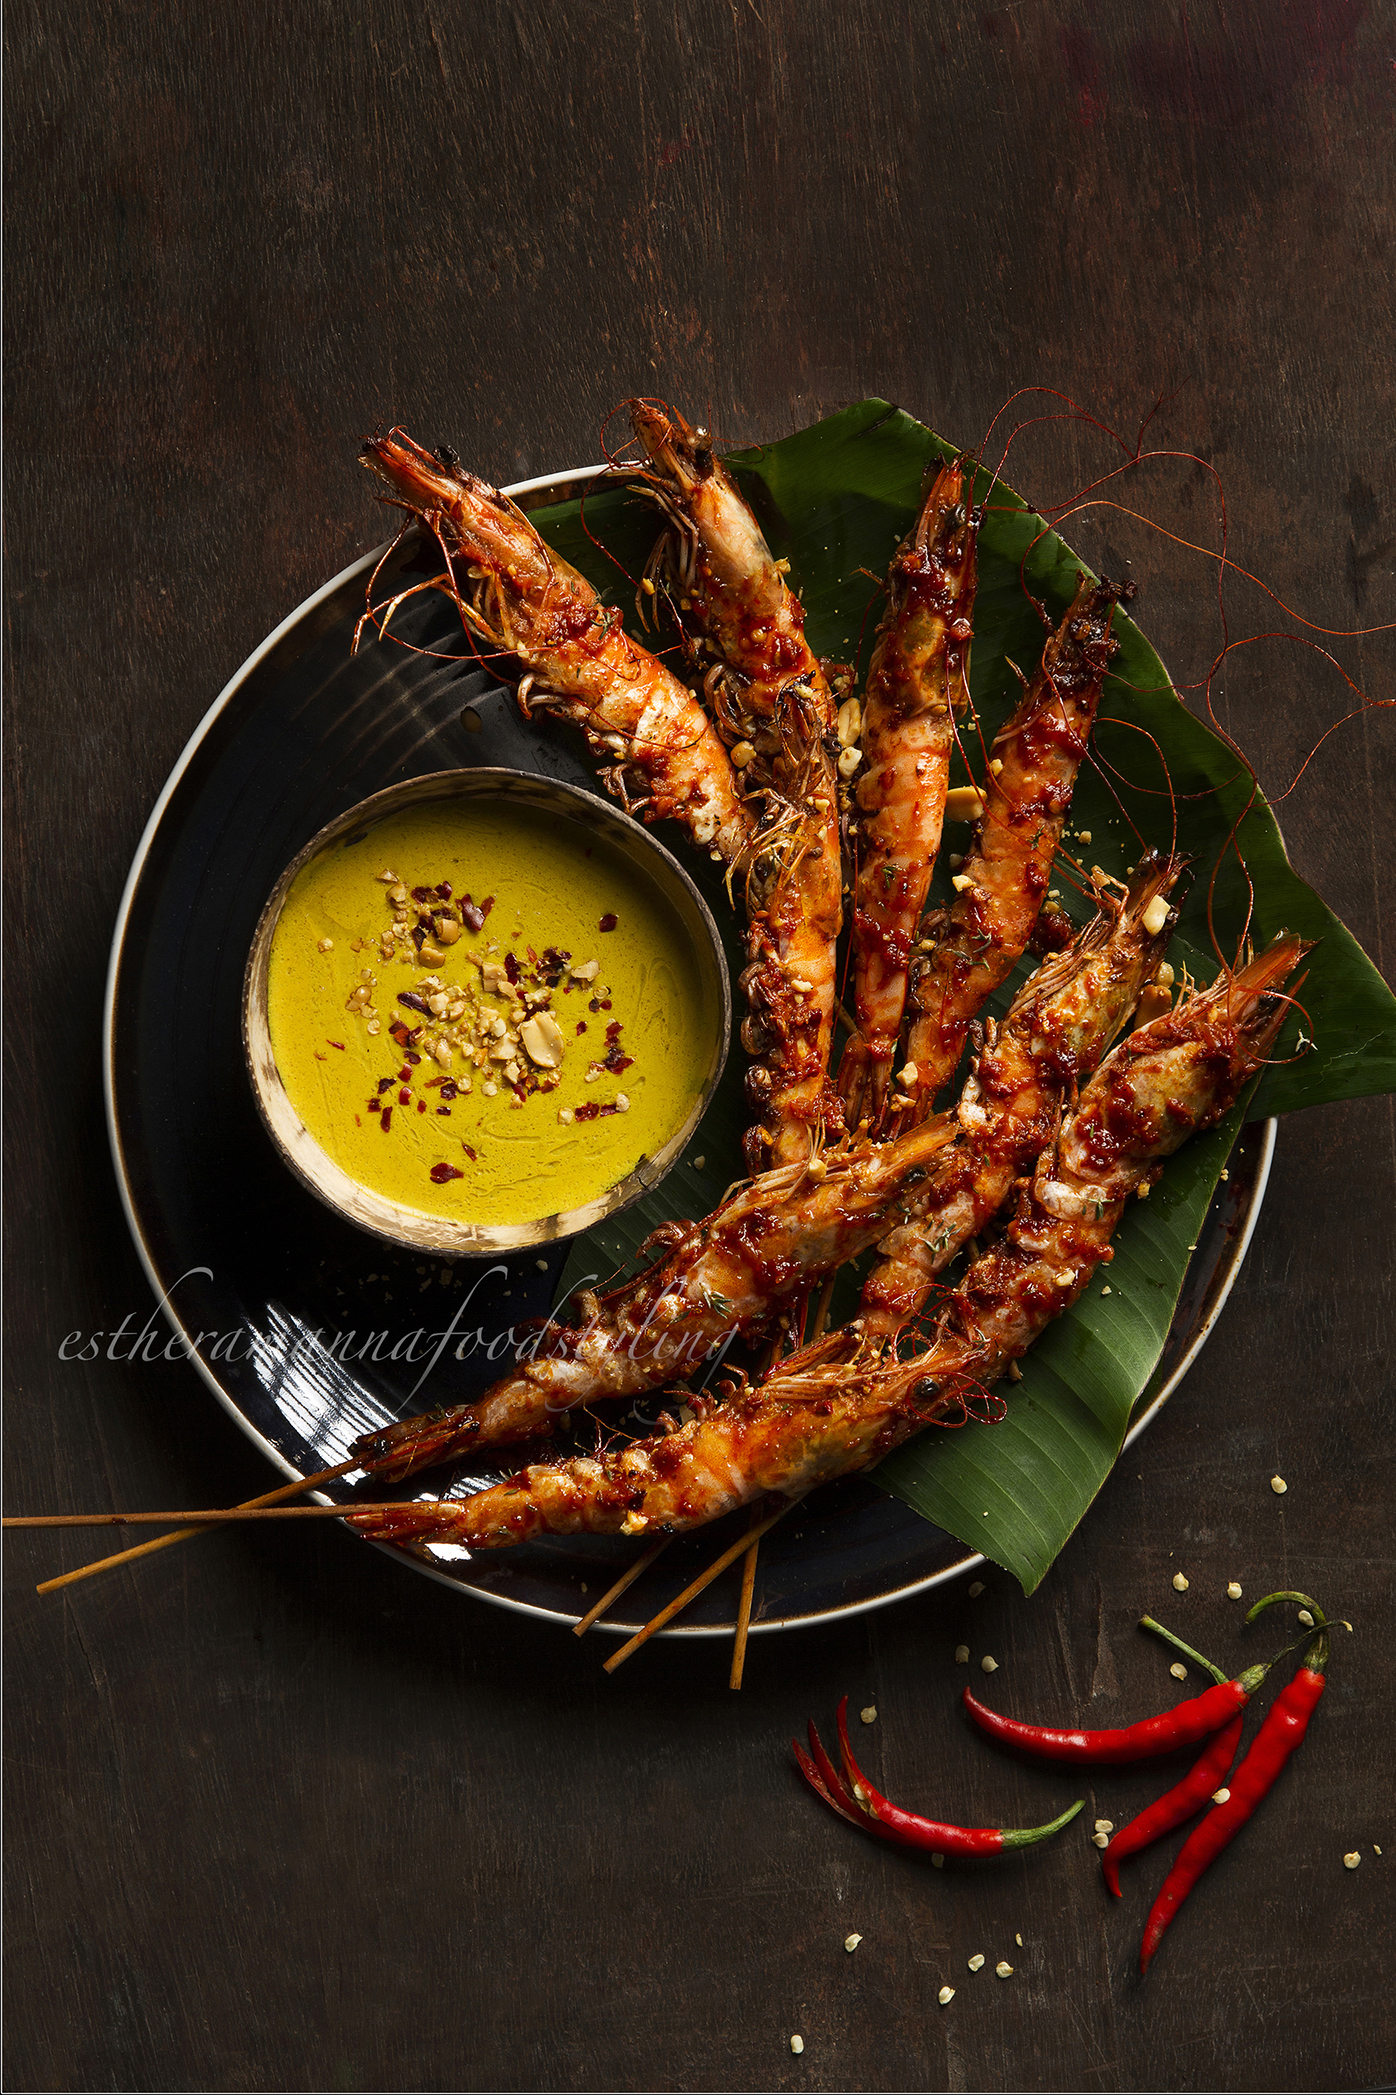 Foodstyling for a restaurant with Spicy grilled prawns and peanut sauce.